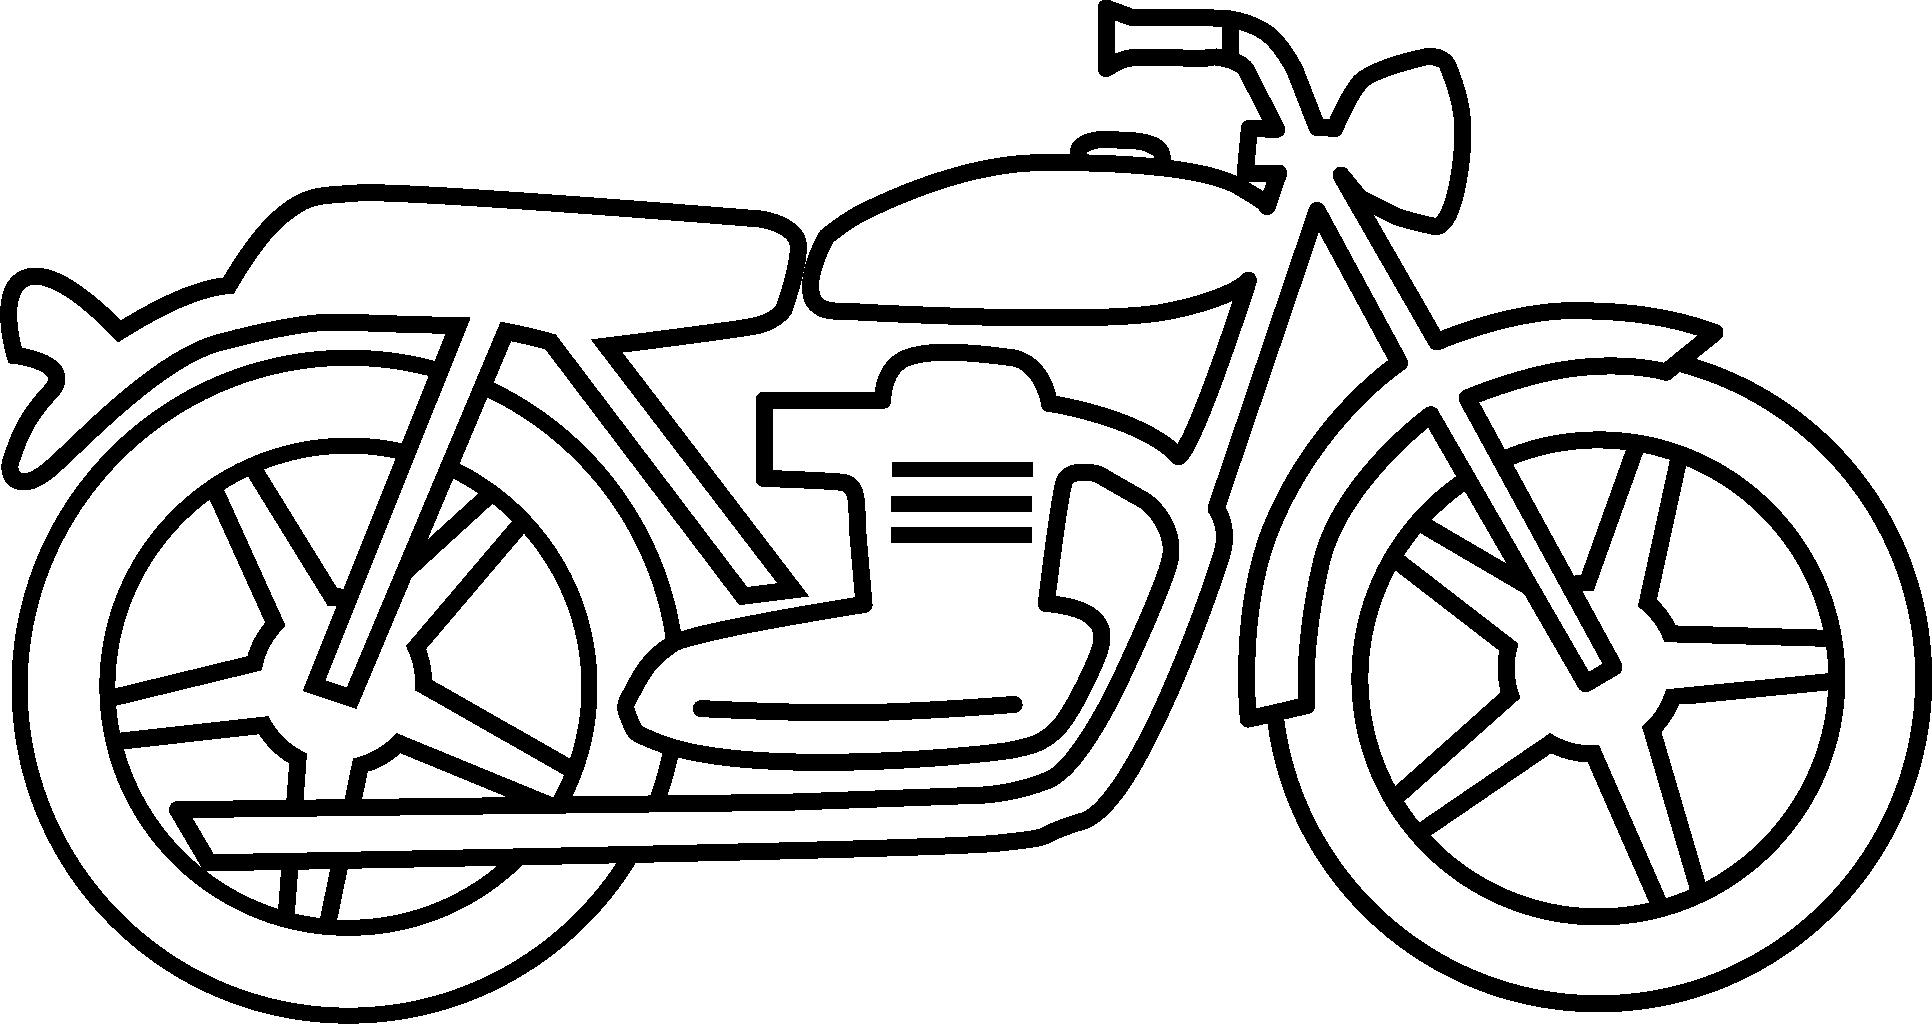 Drawn bike motor #1